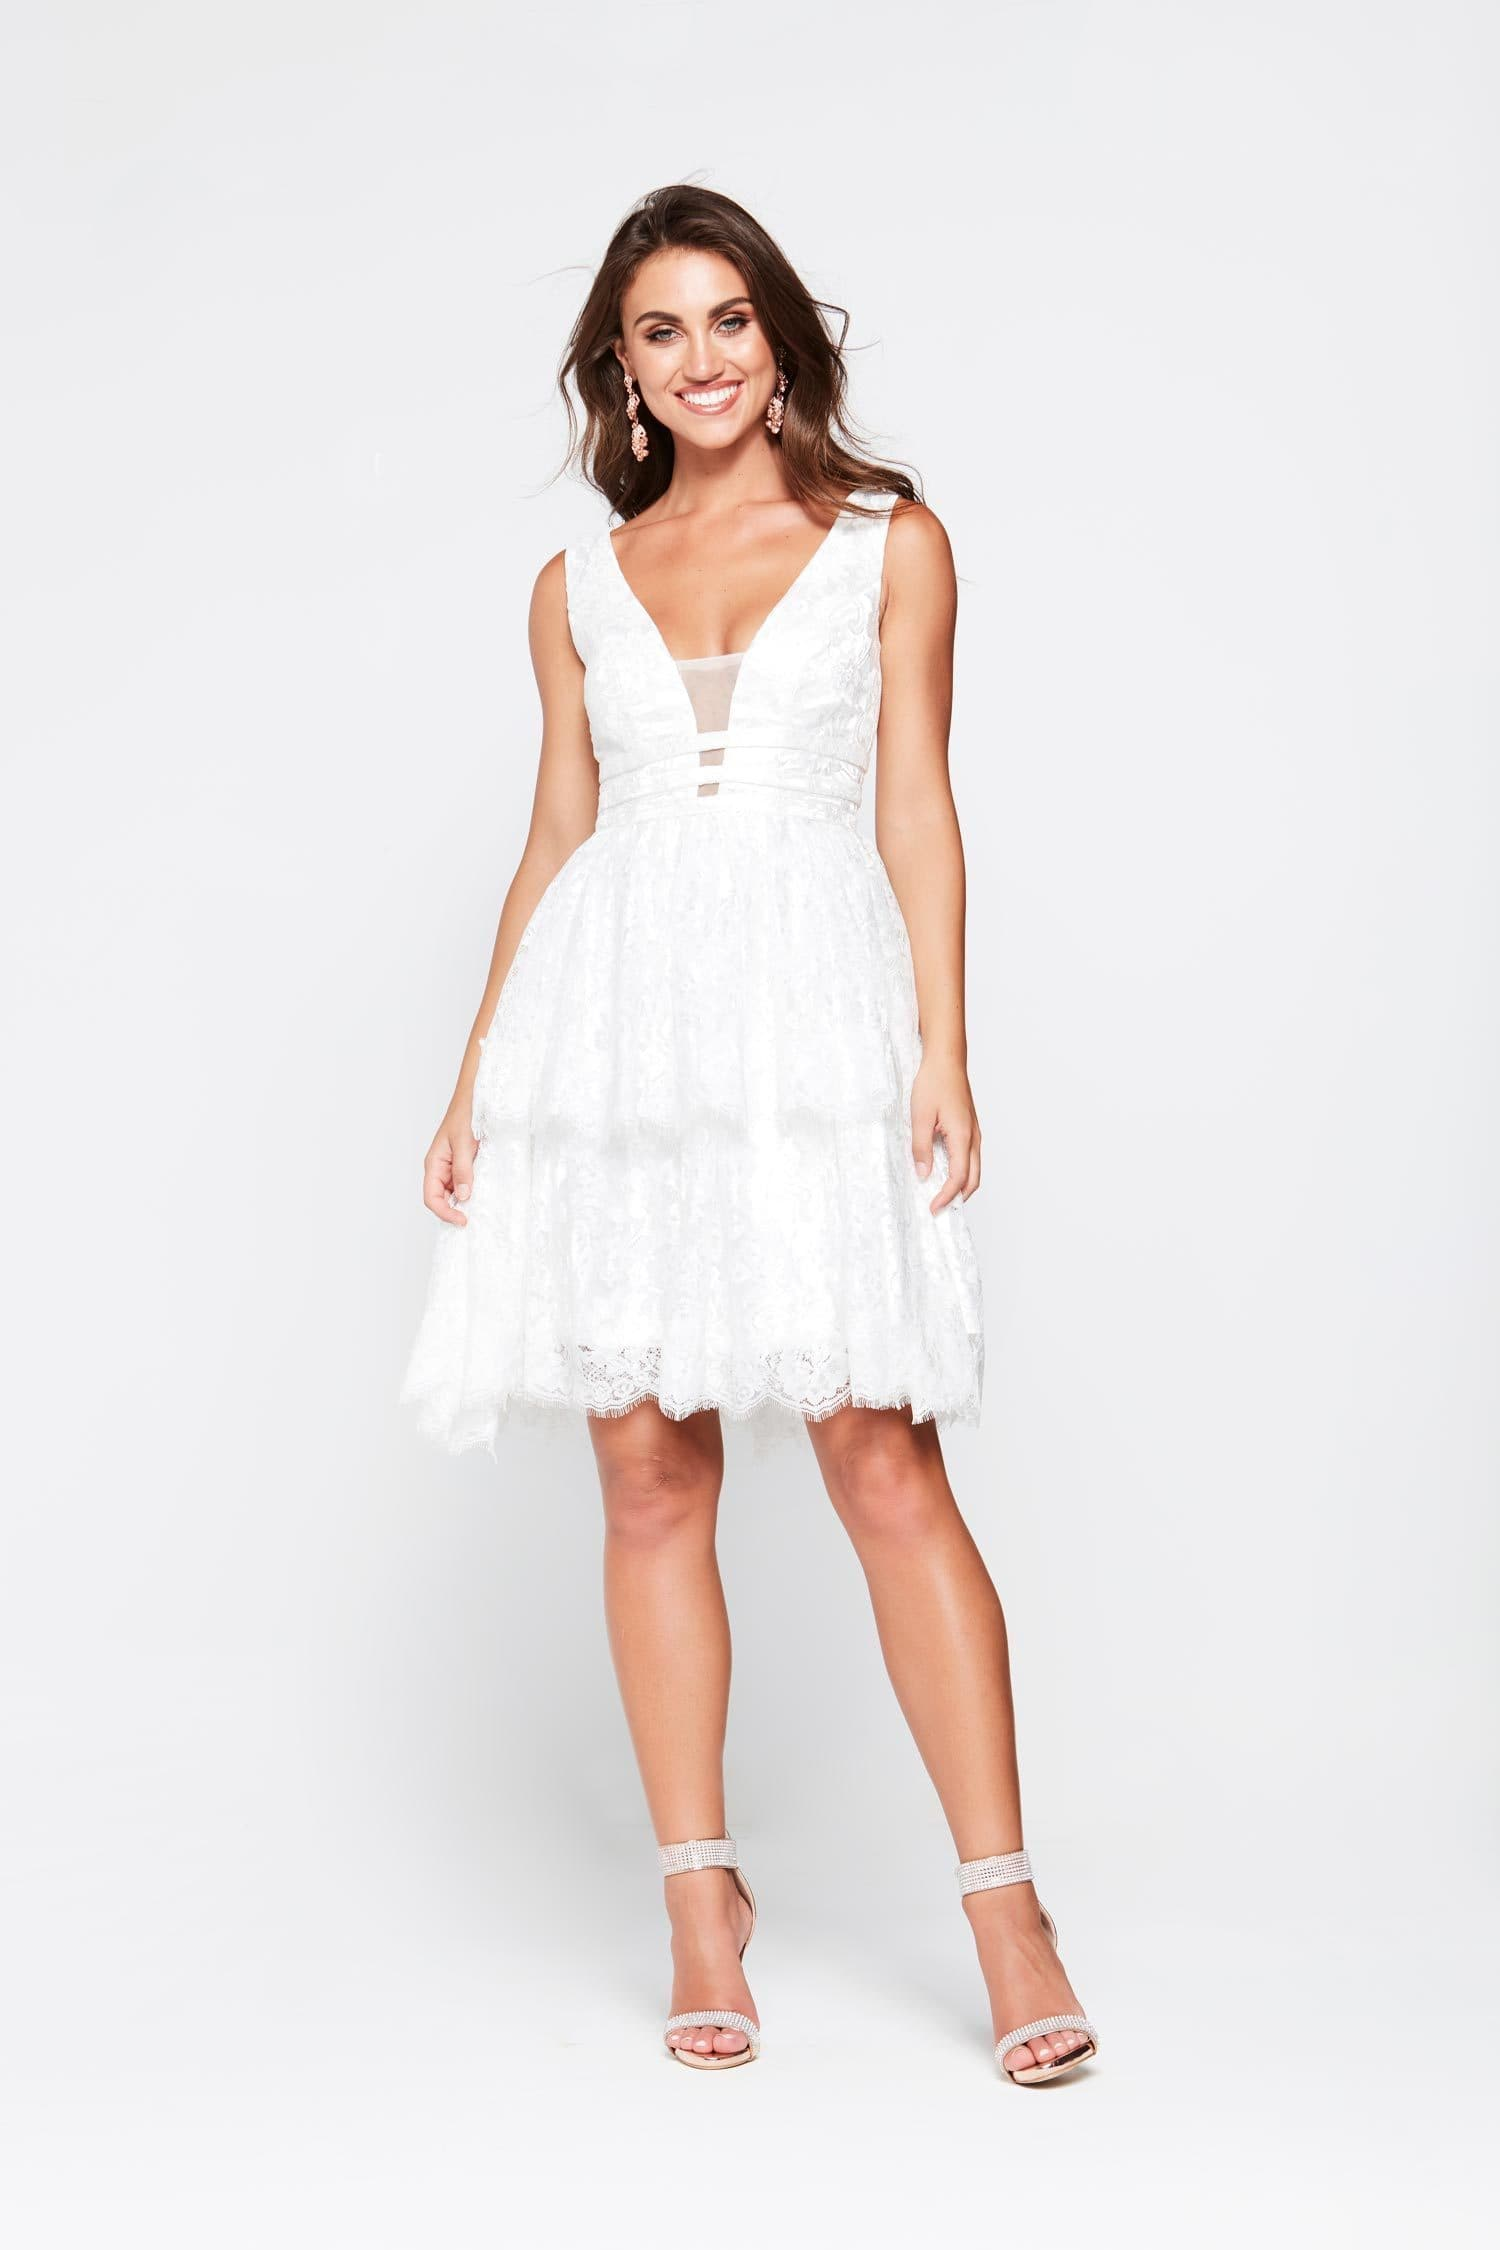 A&N Aimee Mini Gown - White Lace Frills V Neck Low Back Cocktail Dress